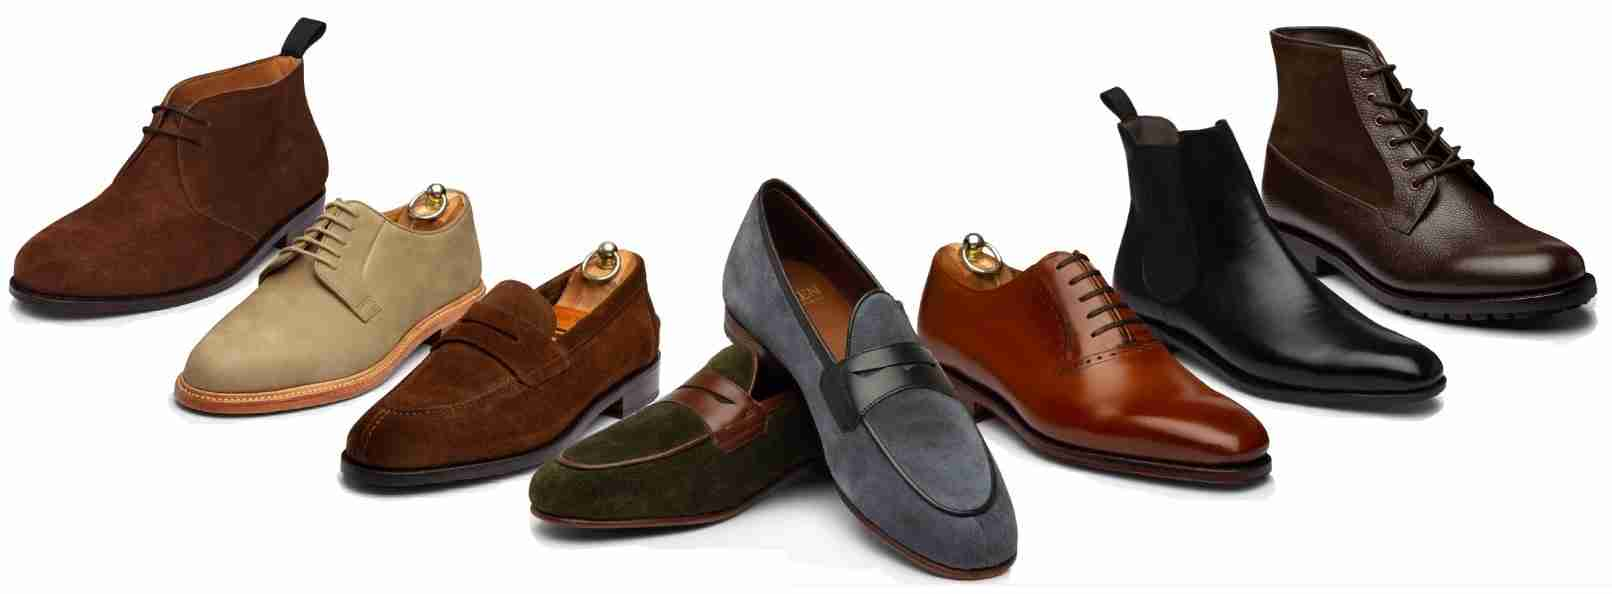 best casual shoes brands in India